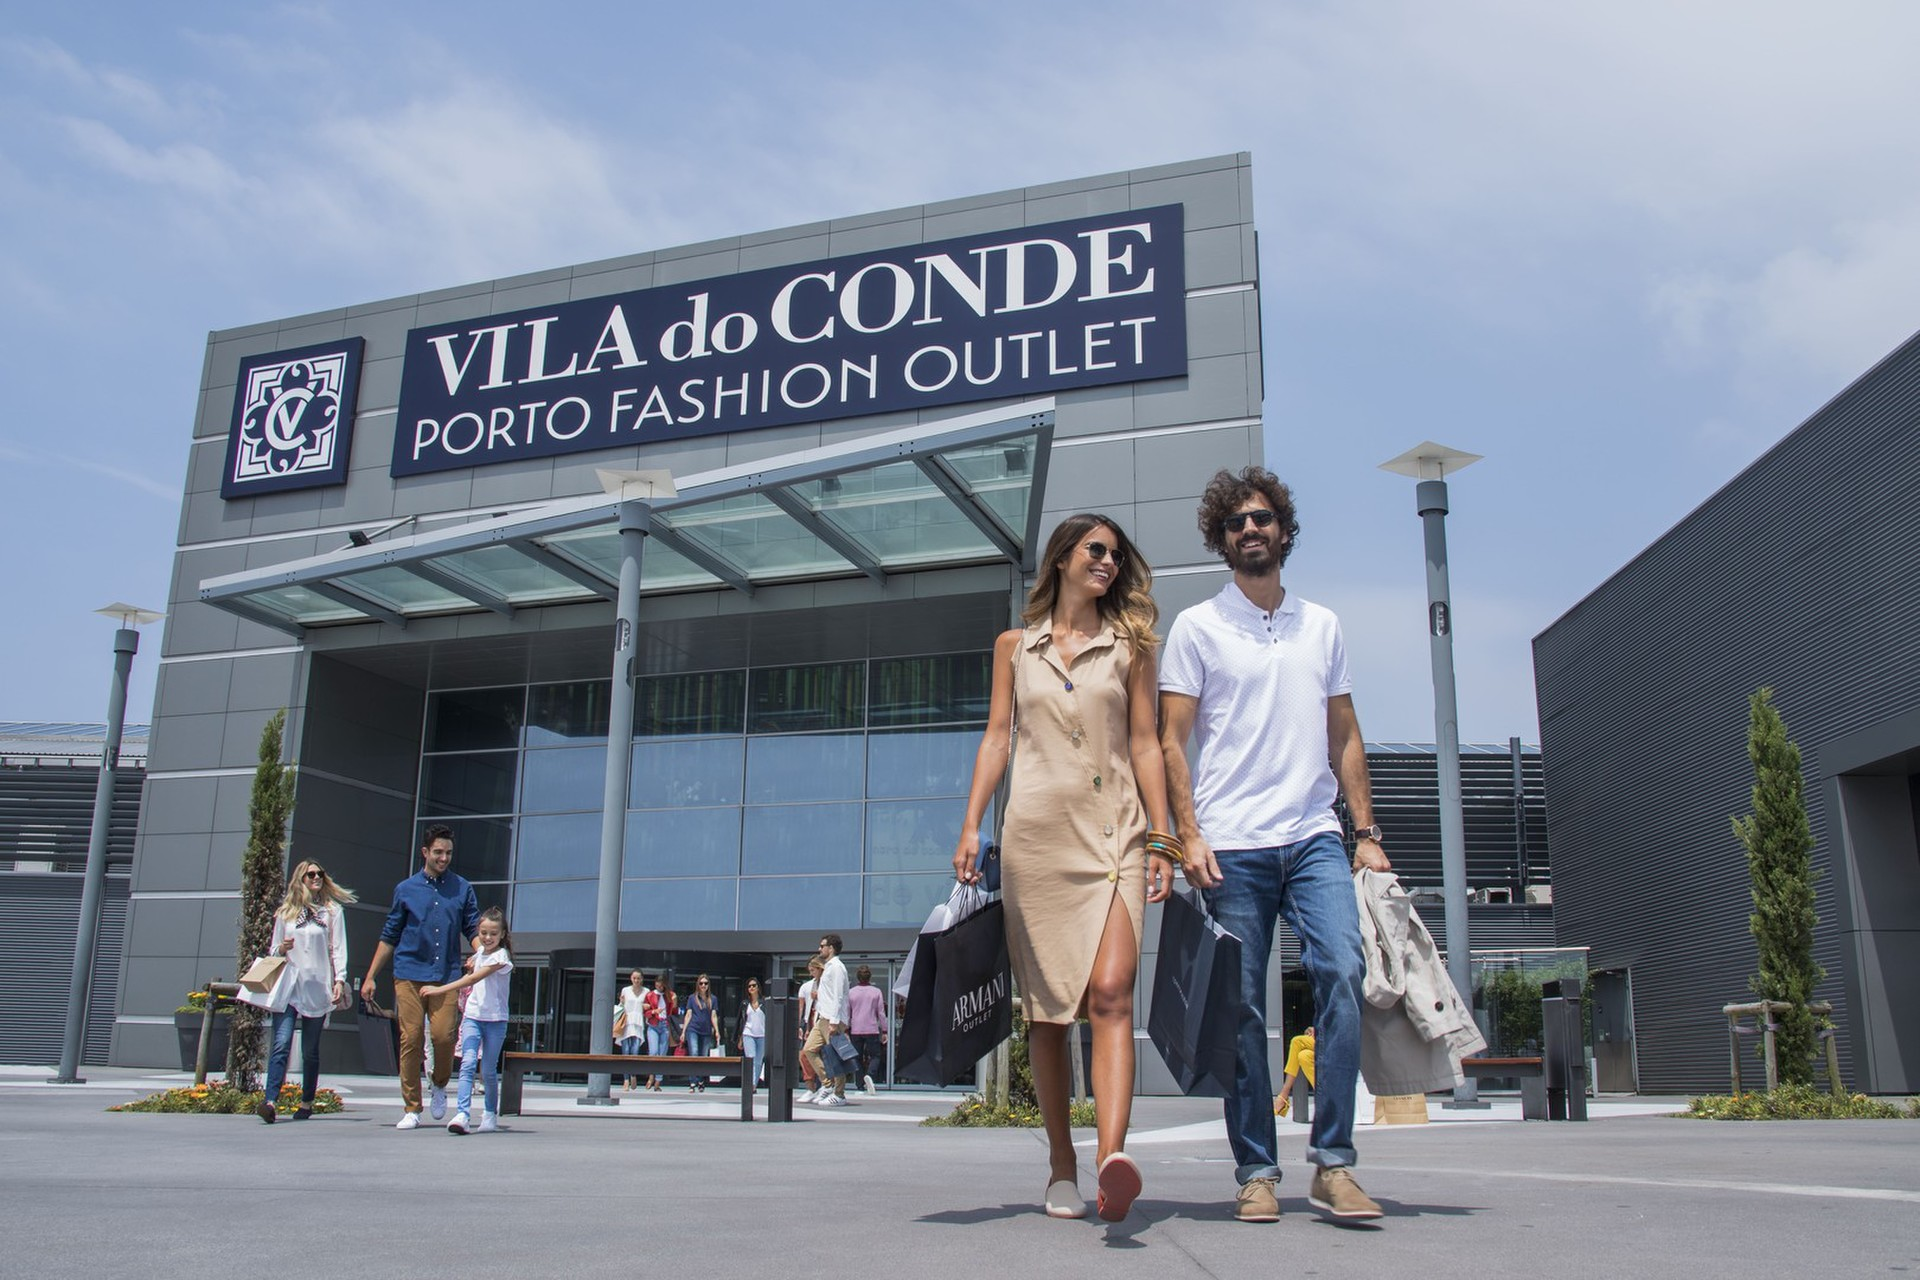 Vila Do Conde Porto Fashion Outlet Via Outlets